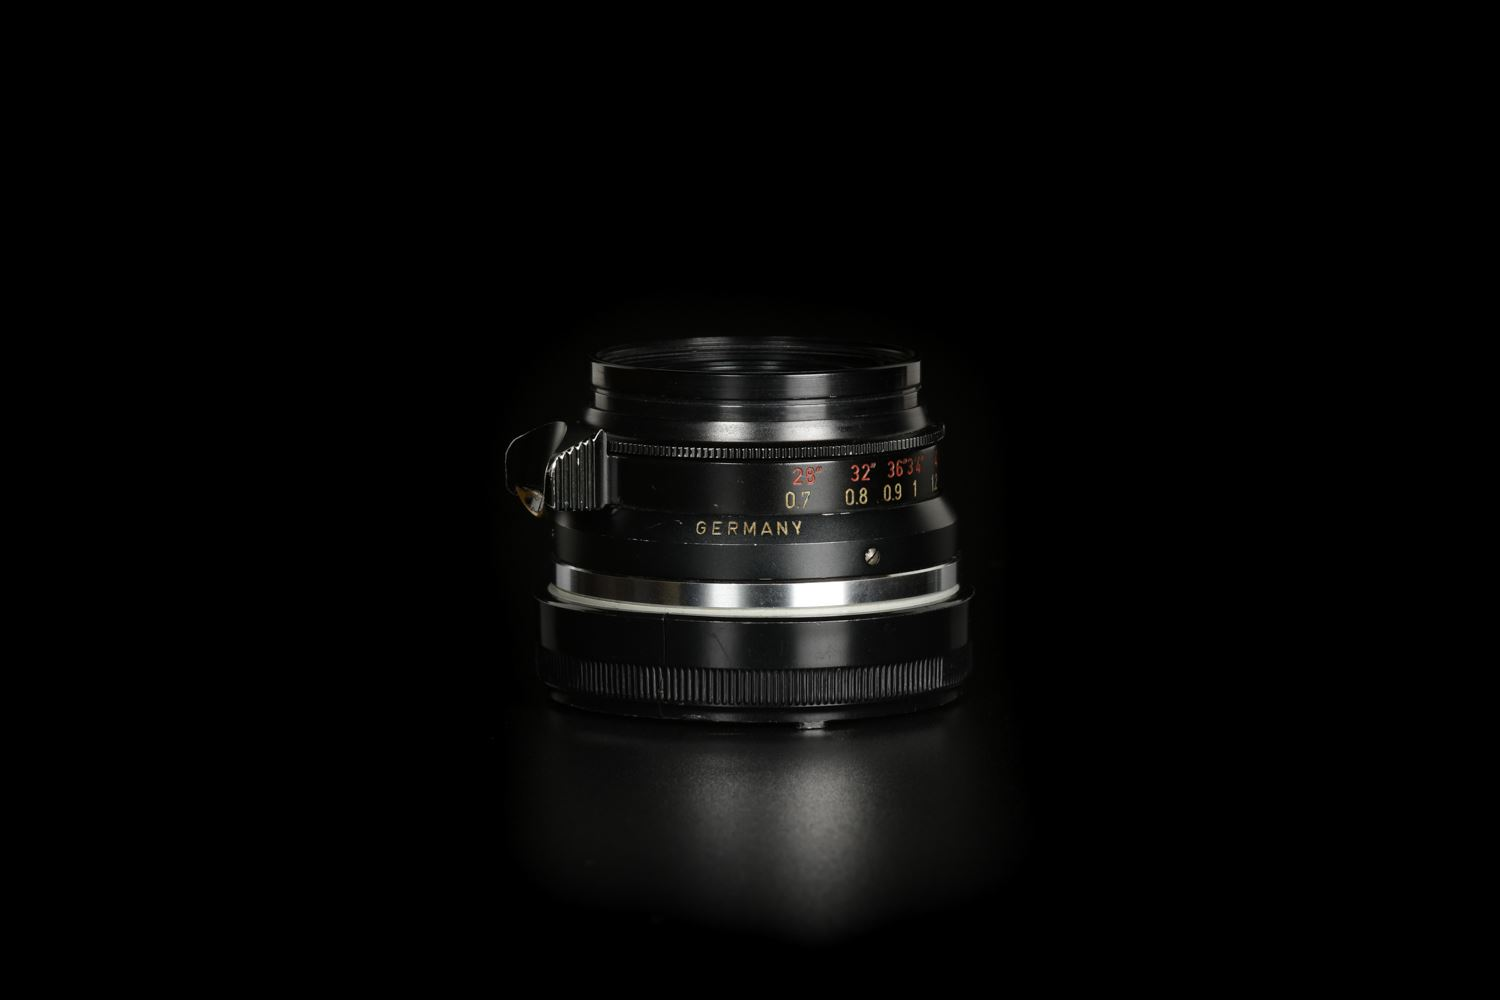 Picture of Leica Summicron-M 35mm f/2 Ver.1 8-element Germany Black Paint M2